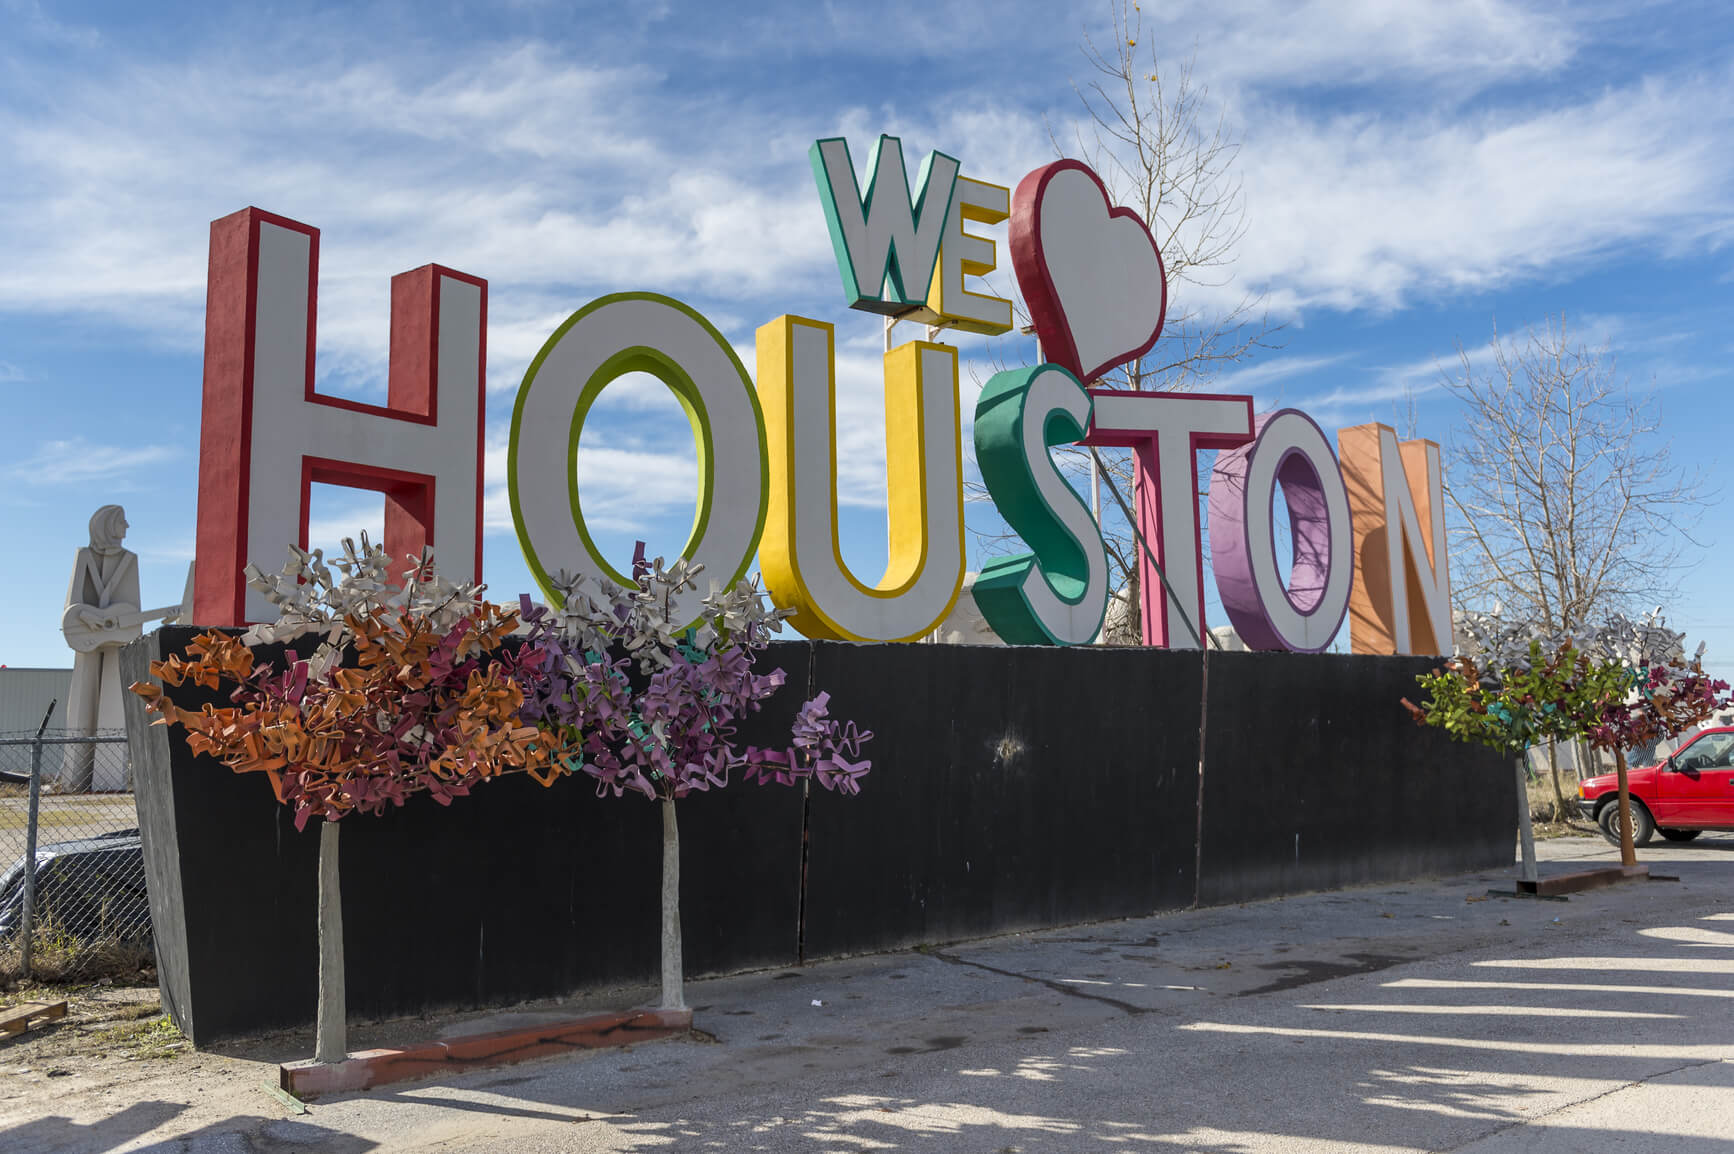 Non-stop from Manchester, UK to Houston, Texas for only £339 roundtrip (Sep-Feb dates)